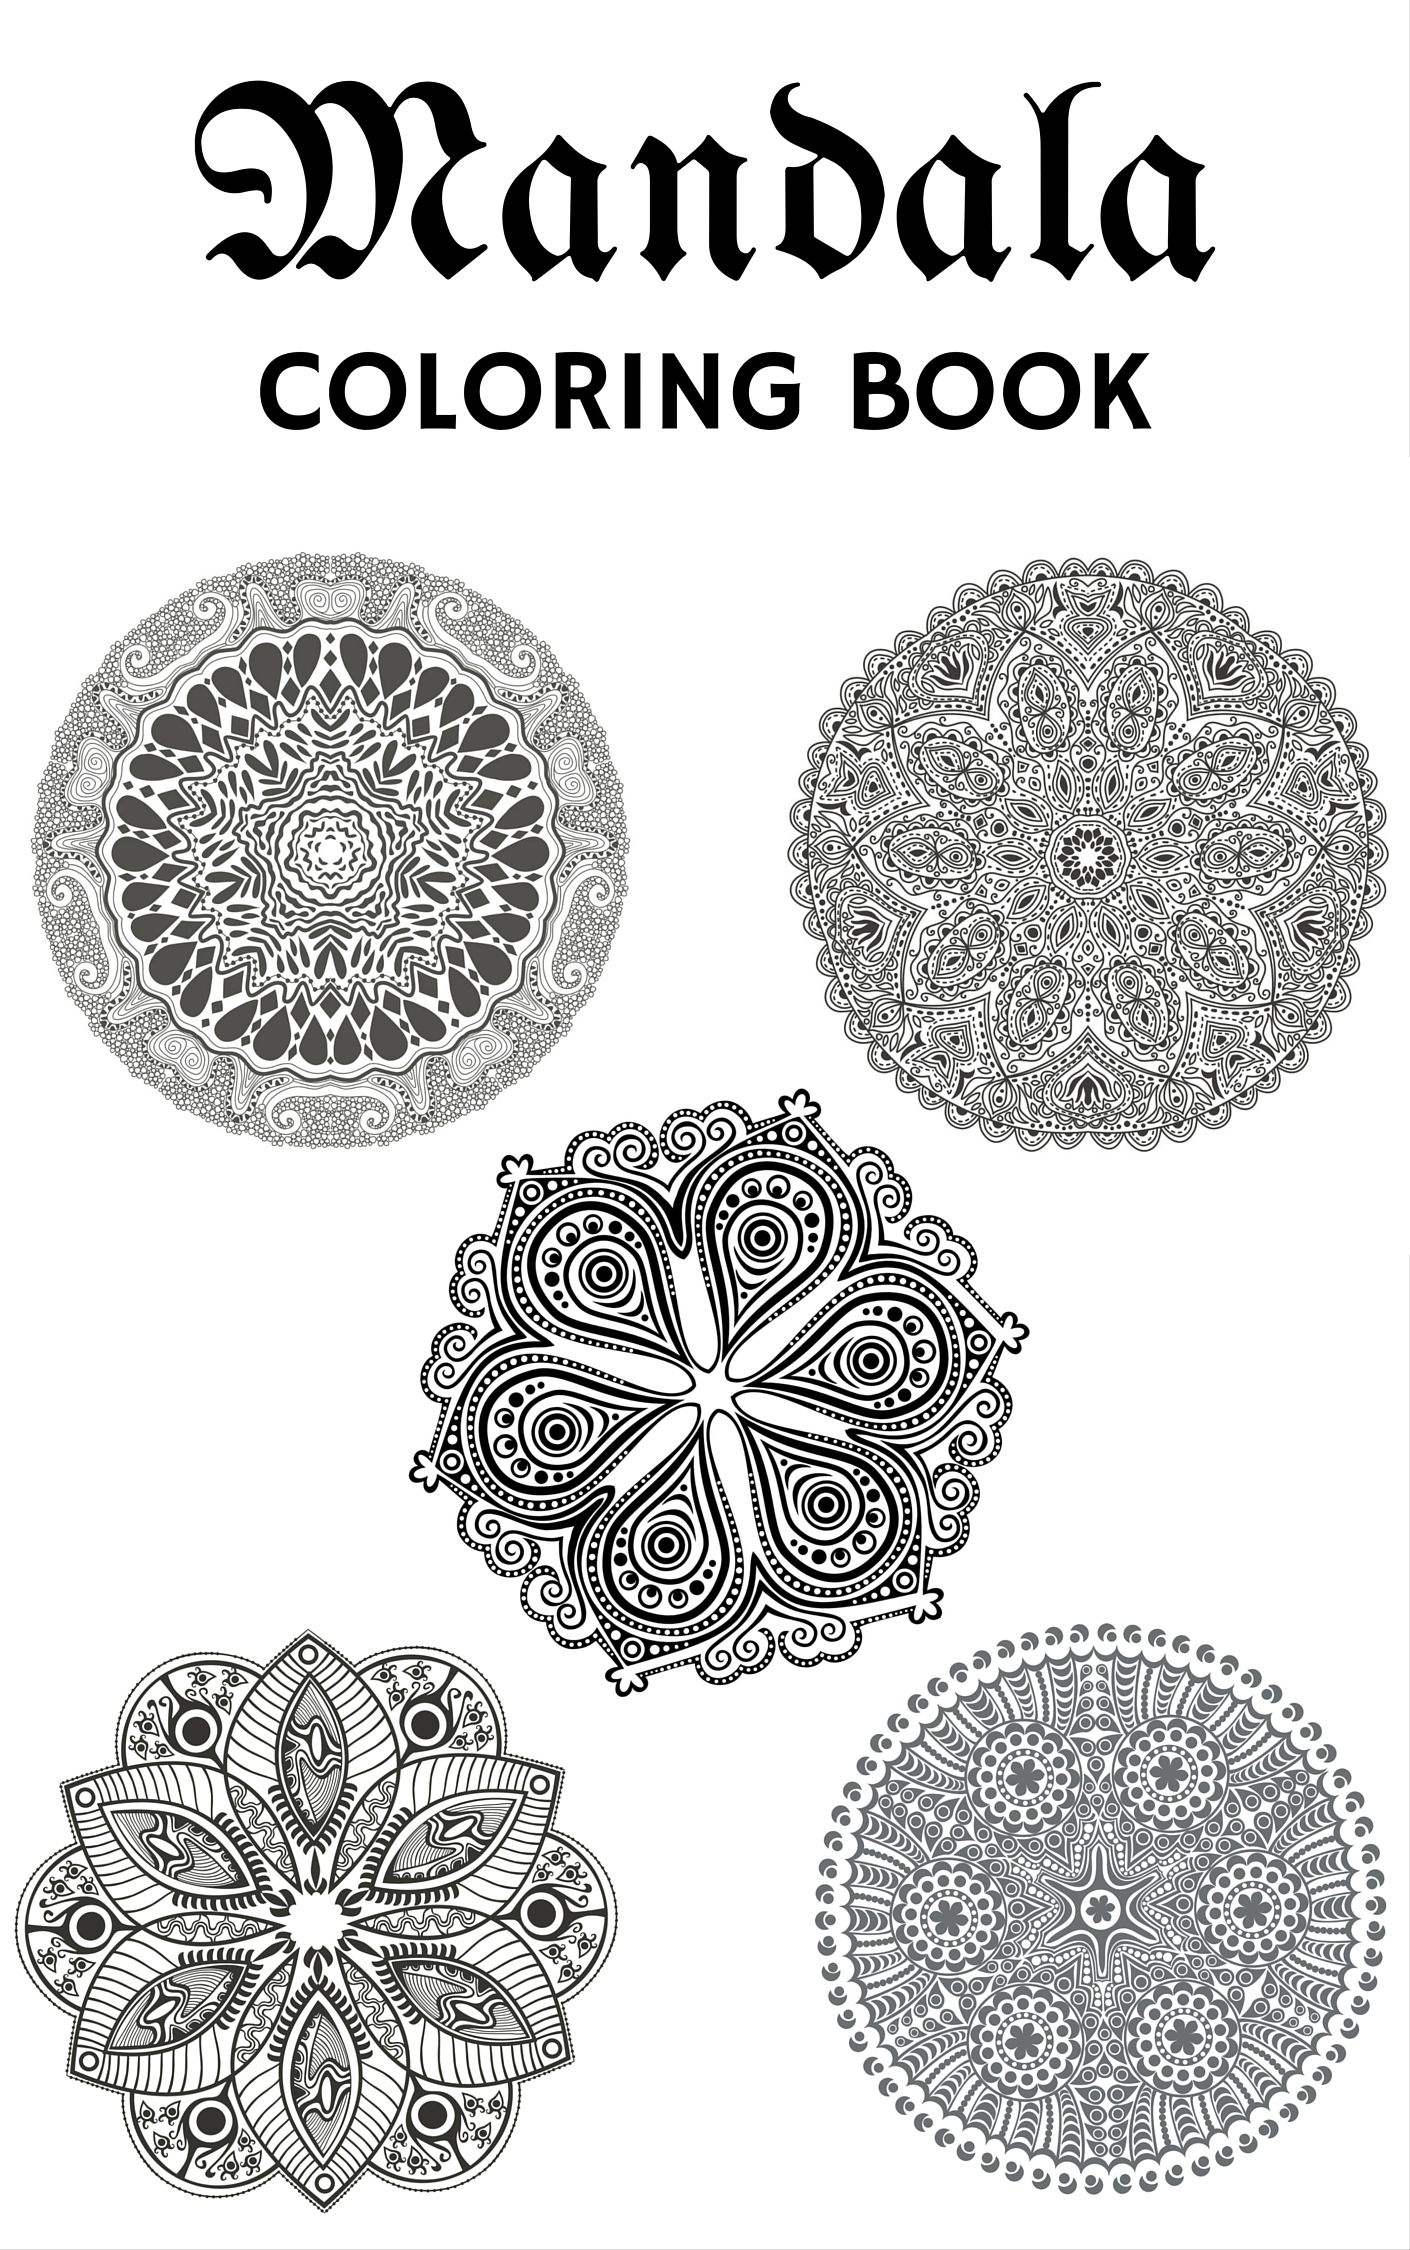 Unique mandala coloring pages - Free Mandala Coloring Pages For Signing Up For This Newsletter